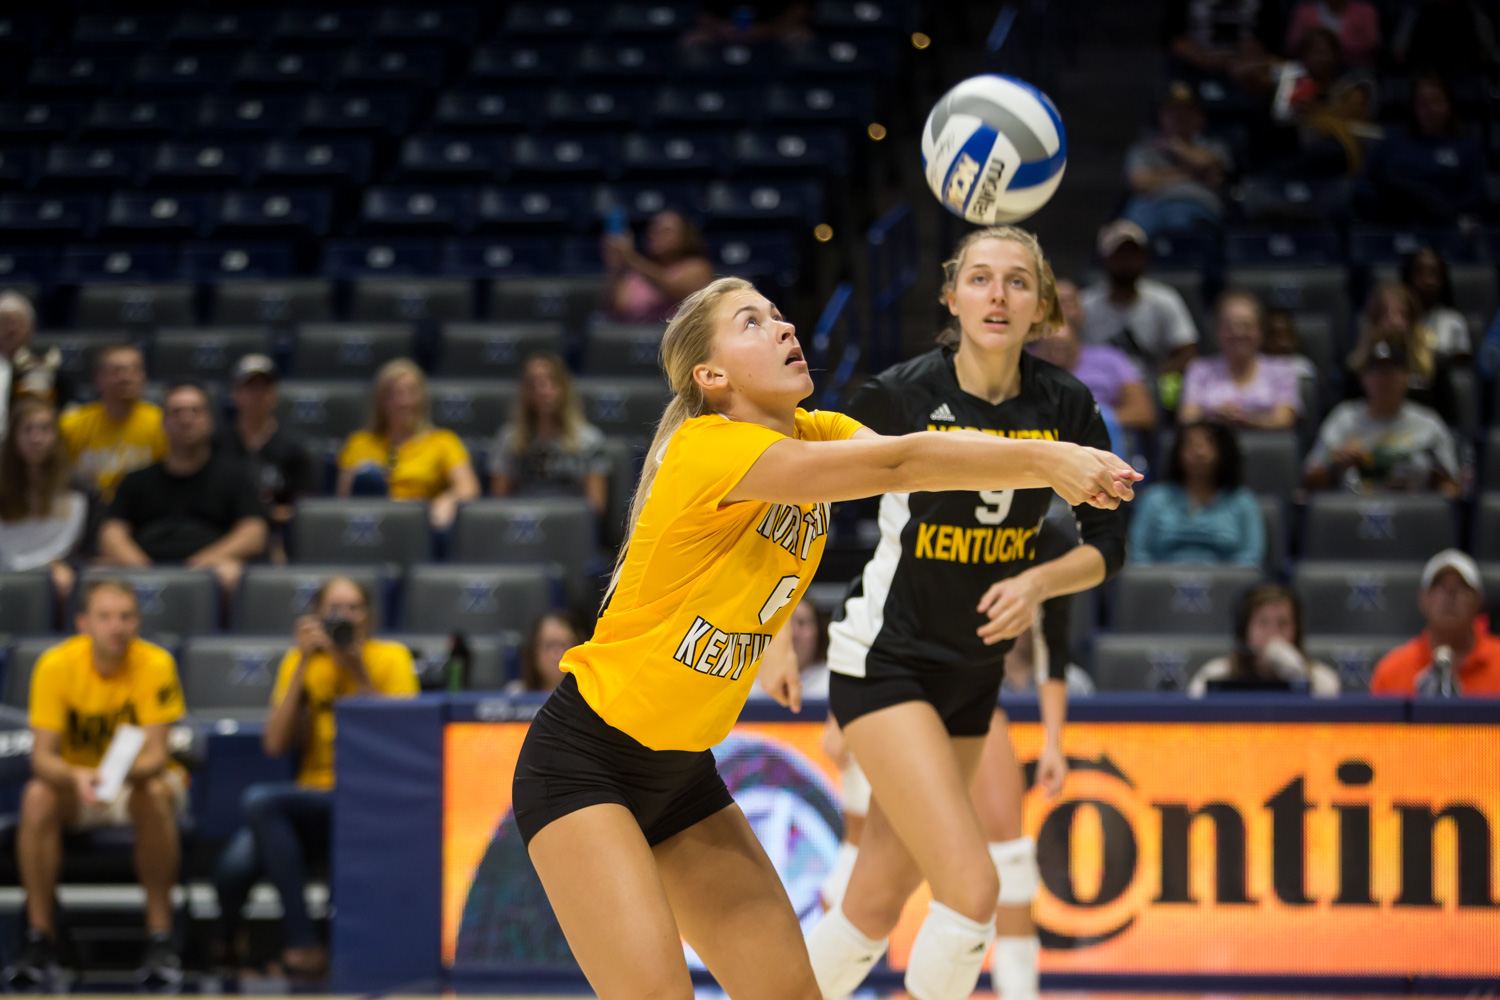 Ashton+Terrill+%286%29+gets+a+hit+during+the+game+against+Xavier.+The+Norse+won+taking+3+of+4+sets.